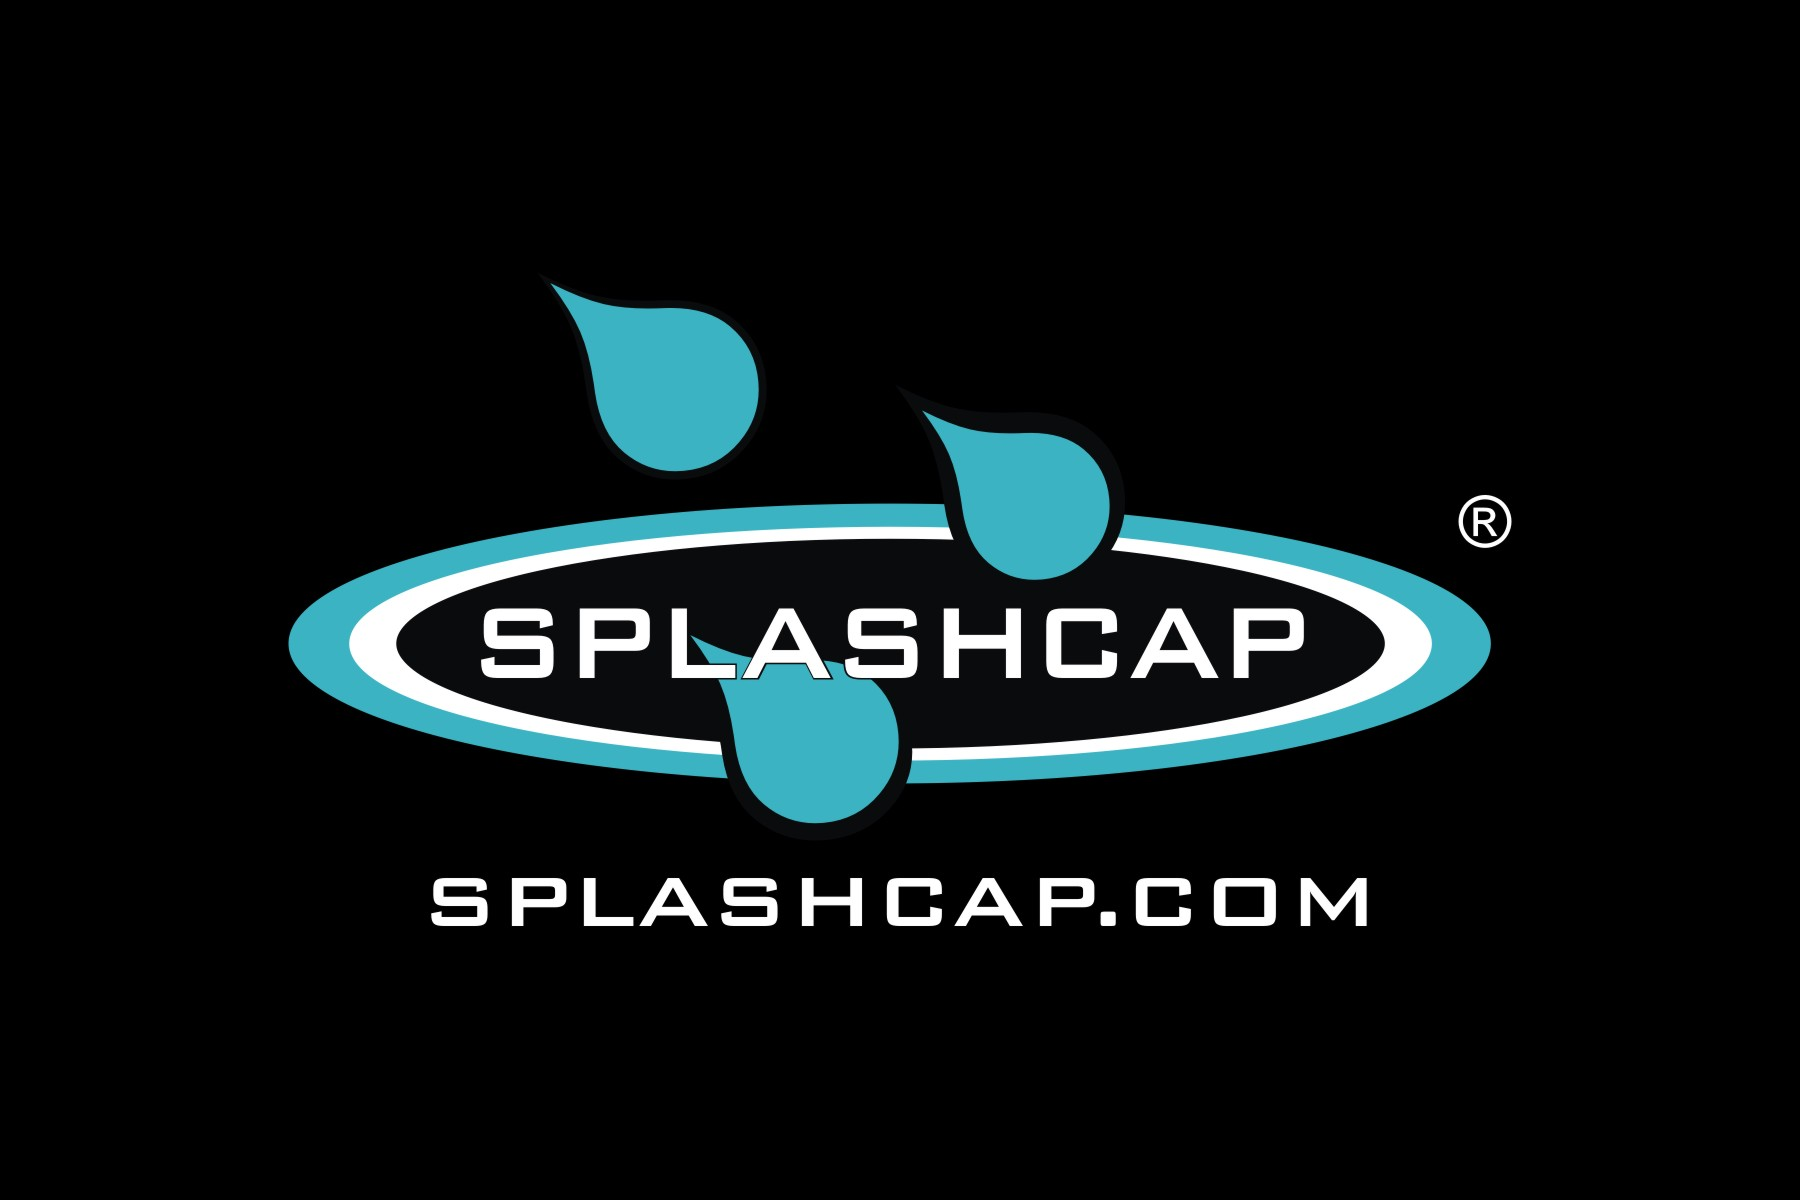 SPLASHCAP-COM-R-BLACK-XL